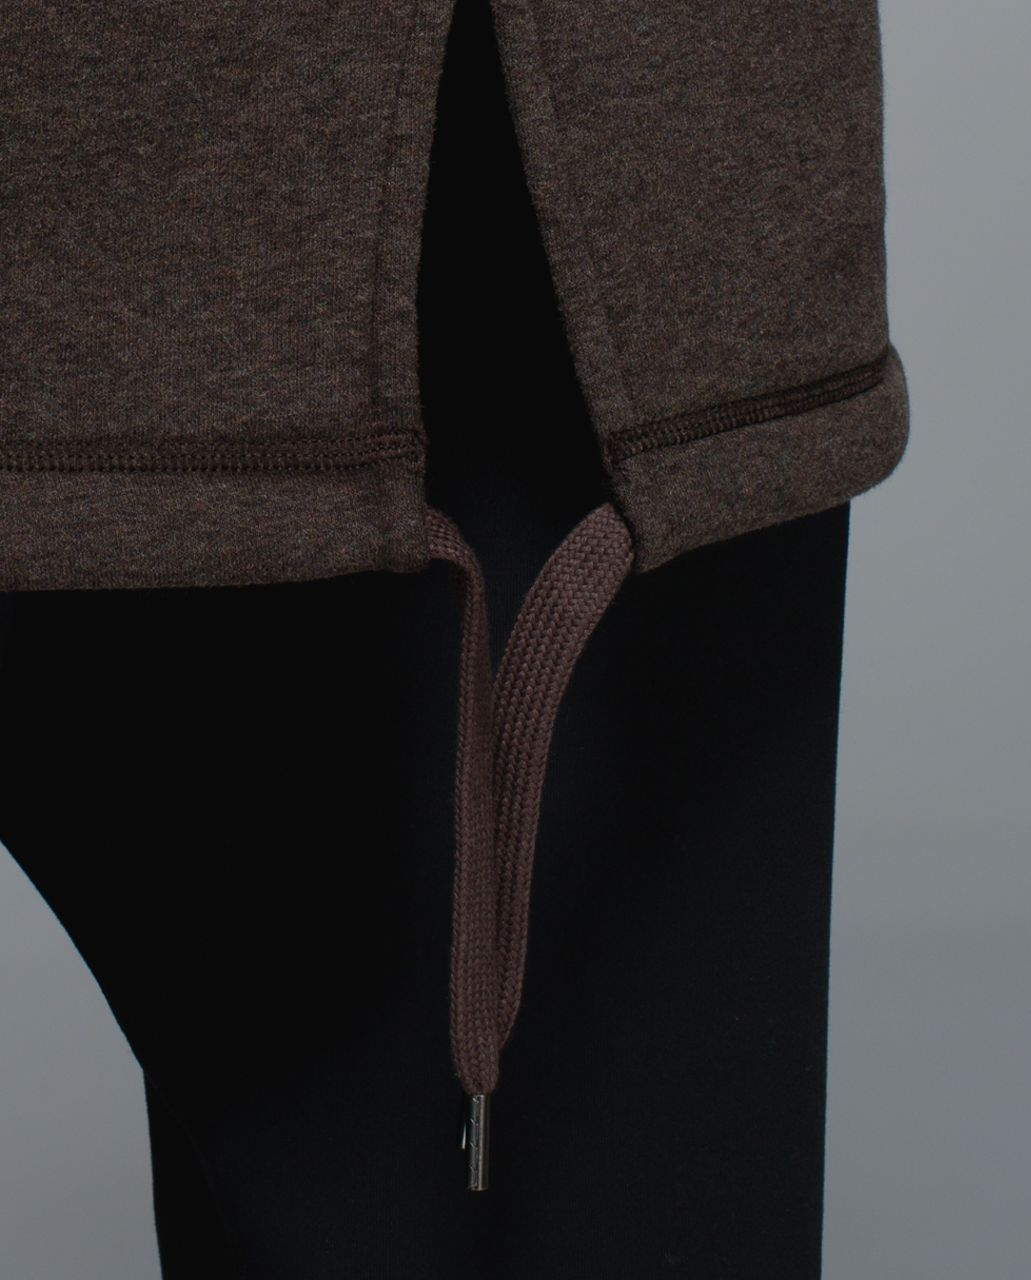 Lululemon Long & Short Of It Jacket - Heathered Bark Chocolate / Bark Chocolate